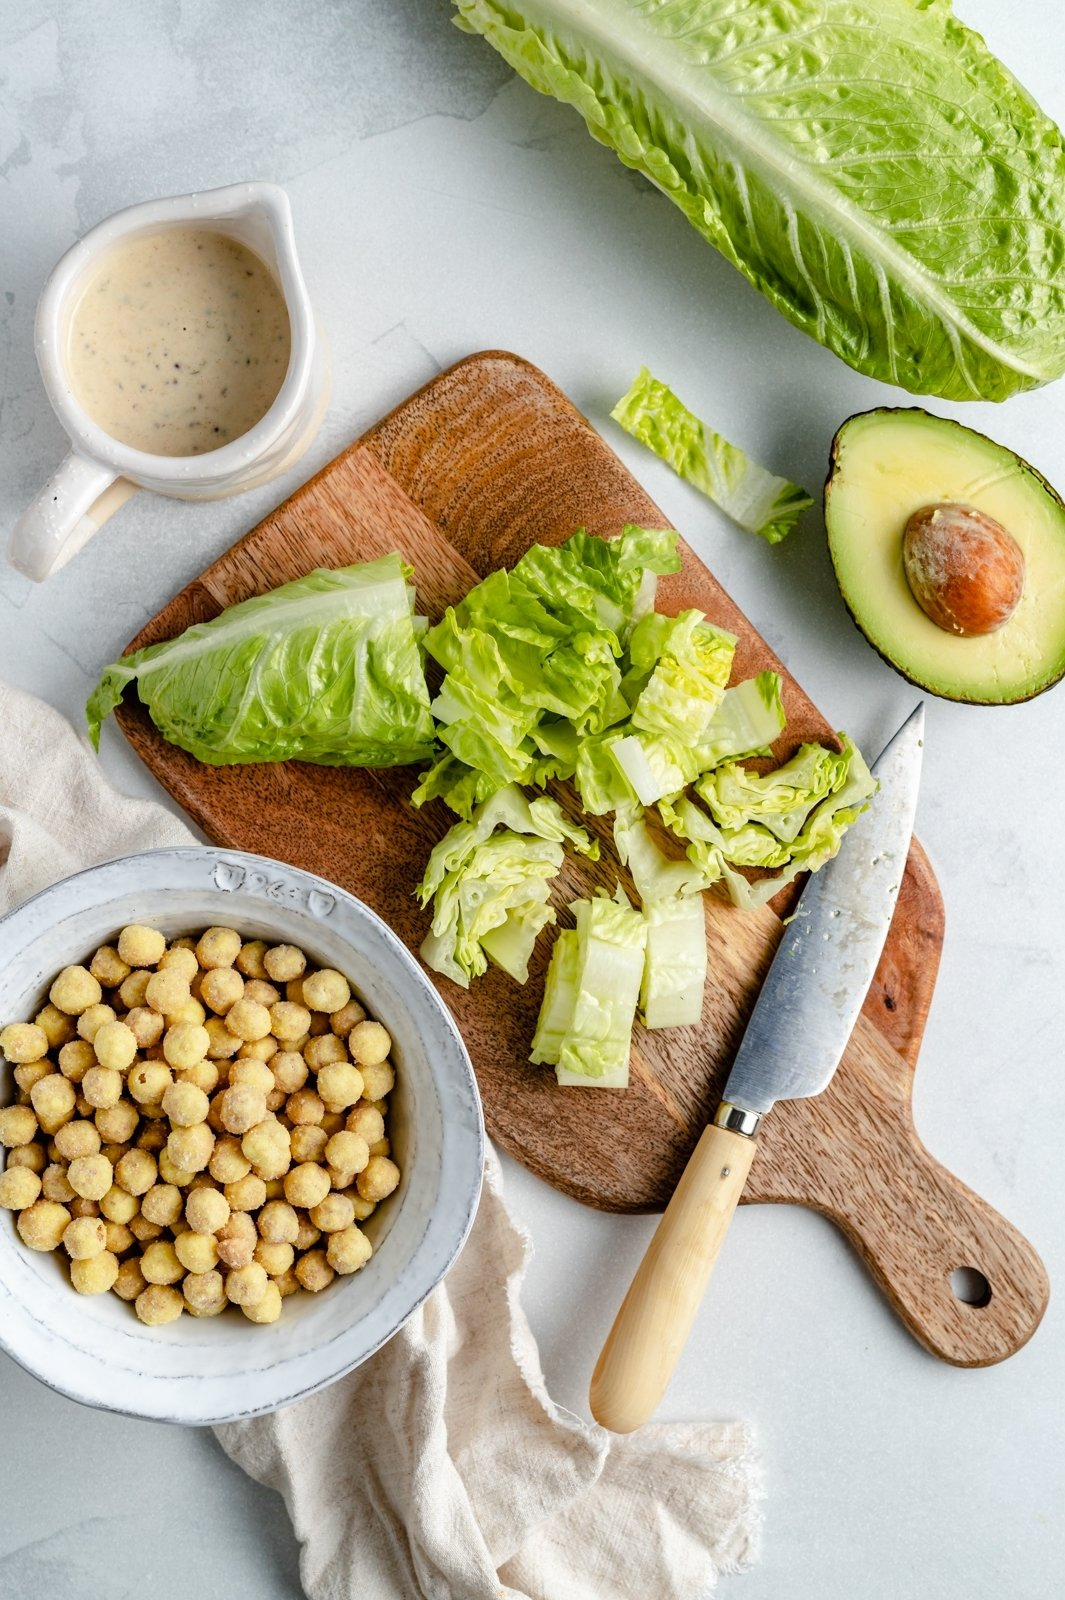 ingredients for vegan caesar salad recipe on a board